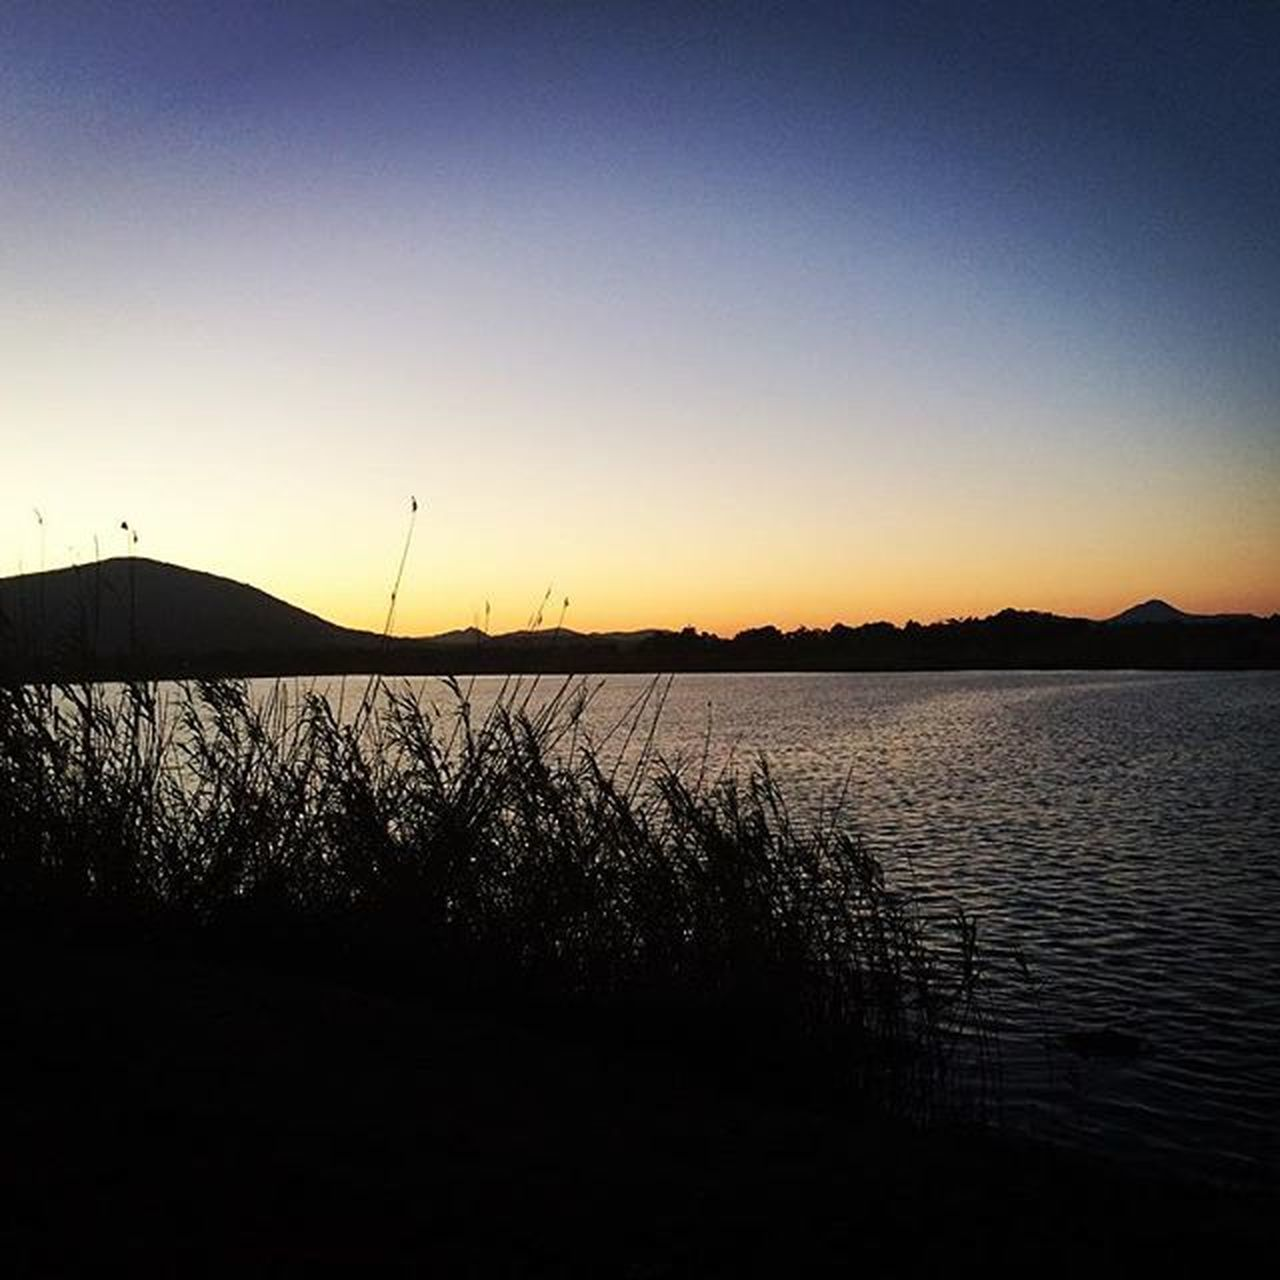 sunset, tranquil scene, nature, silhouette, tranquility, beauty in nature, scenics, no people, lake, outdoors, sky, water, tree, landscape, clear sky, day